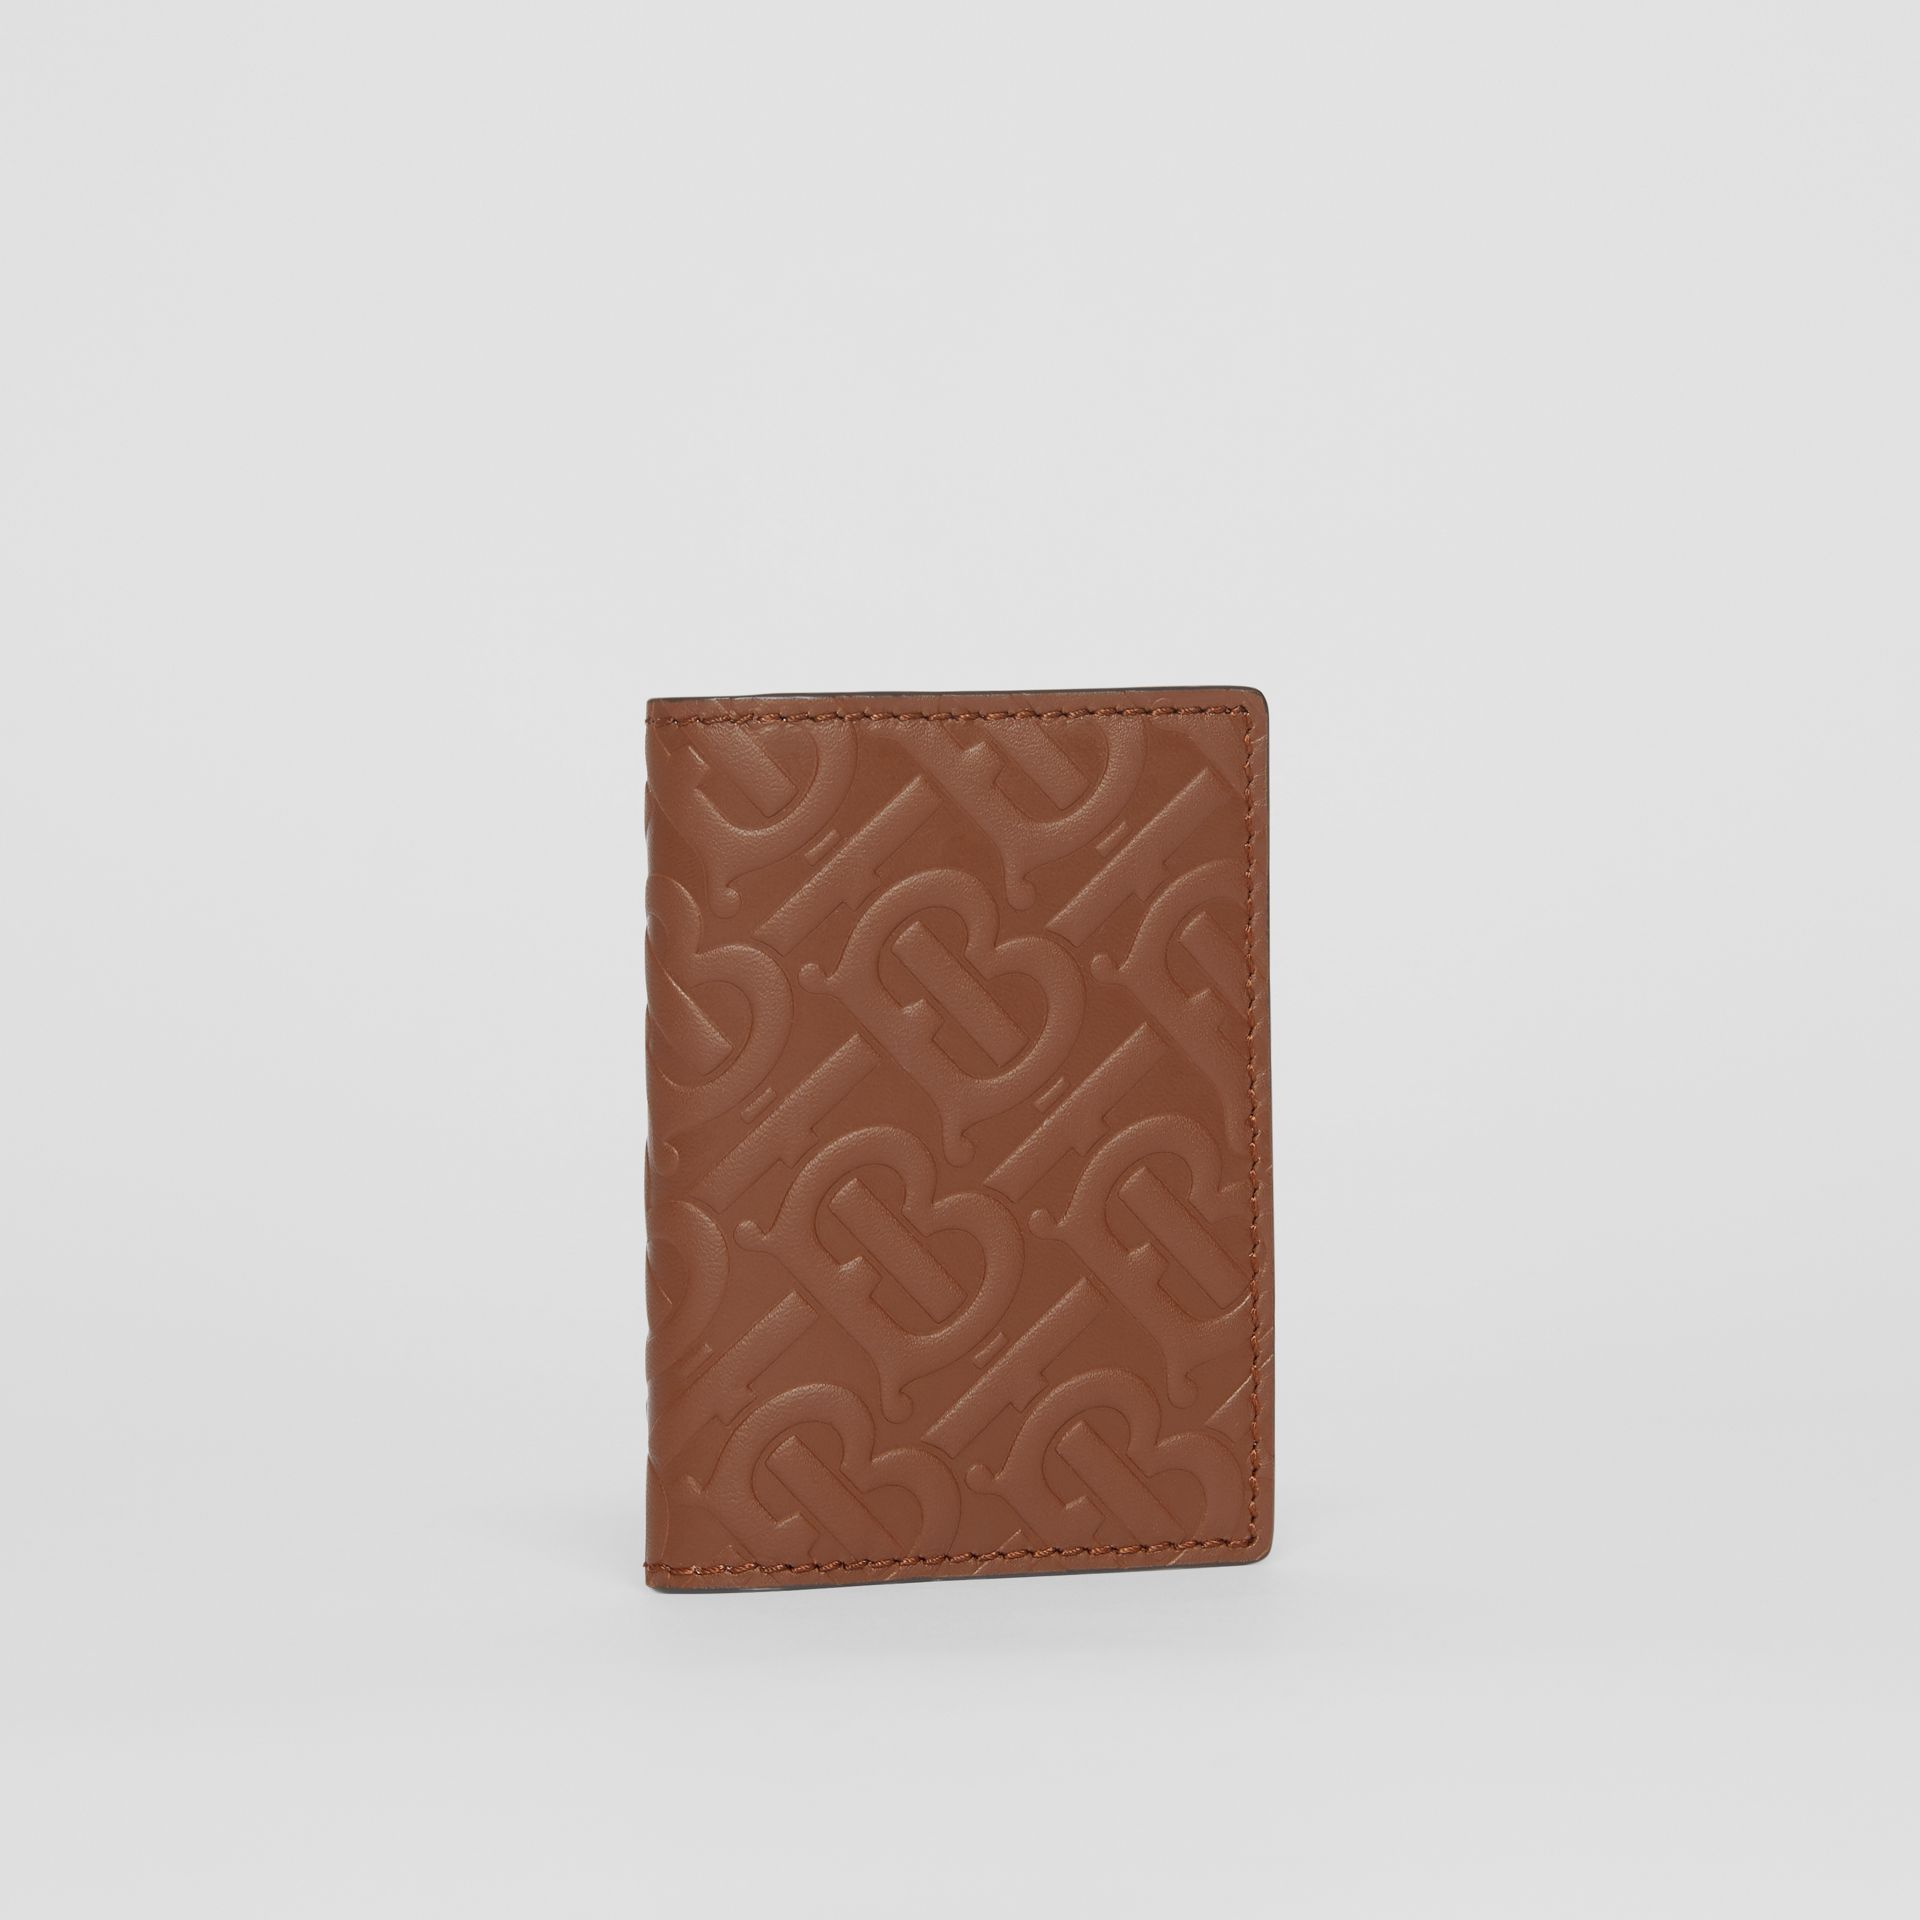 Monogram Leather Bifold Card Case in Dark Tan - Men | Burberry - gallery image 3